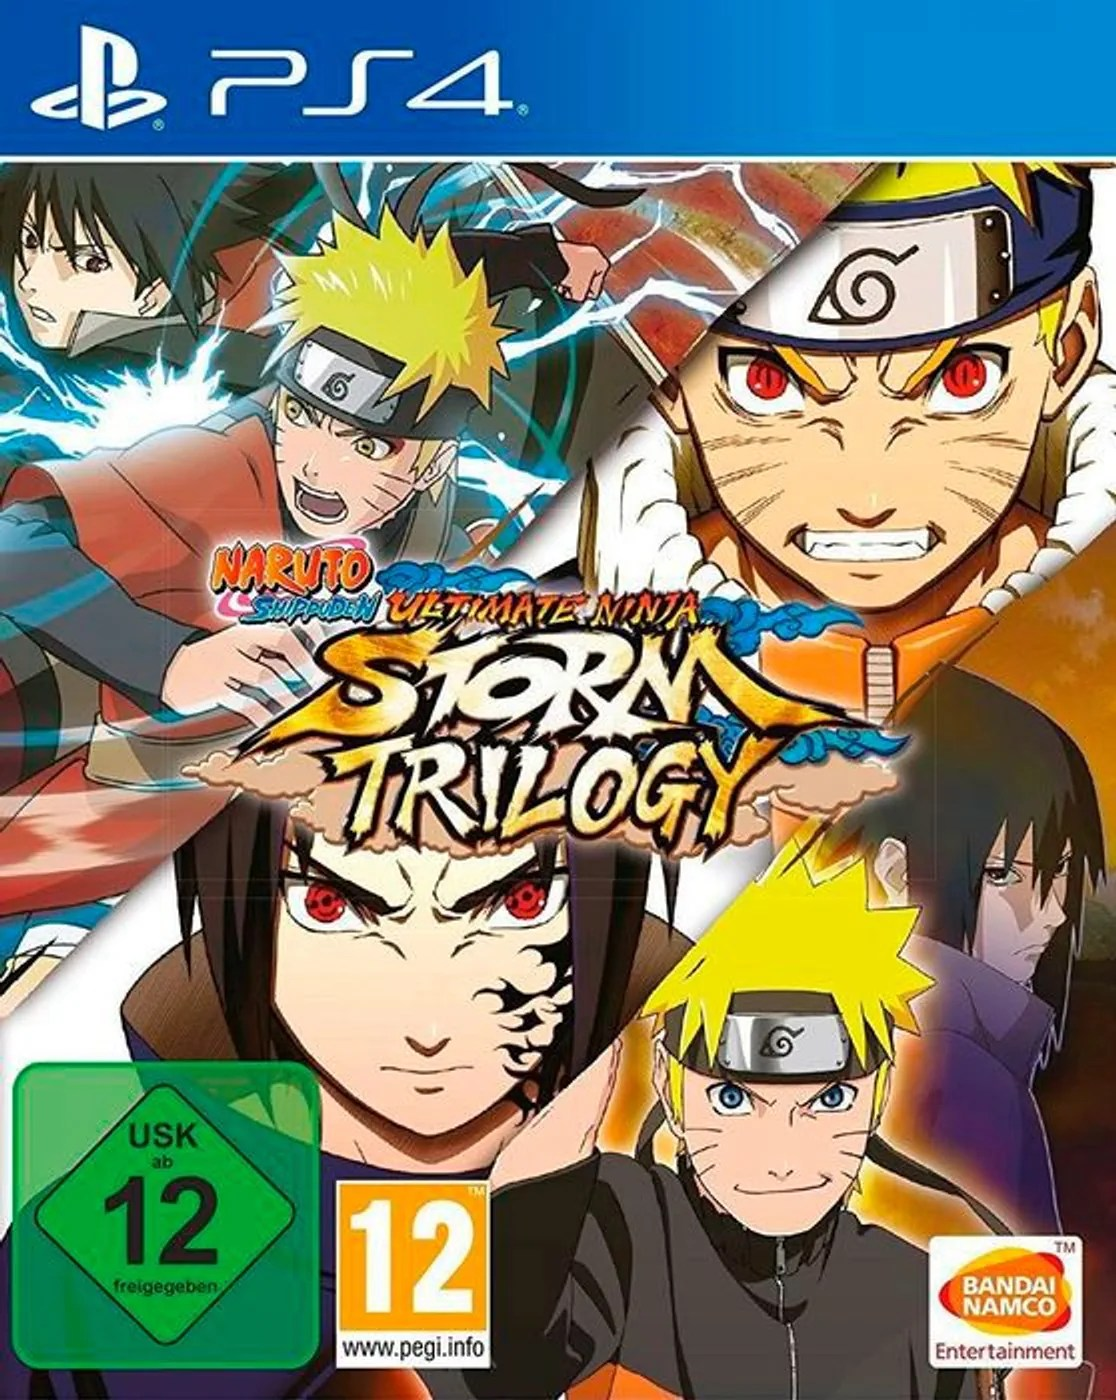 Ps4 Naruto Ultimate Ninja Storm Trilogy D Box Migros